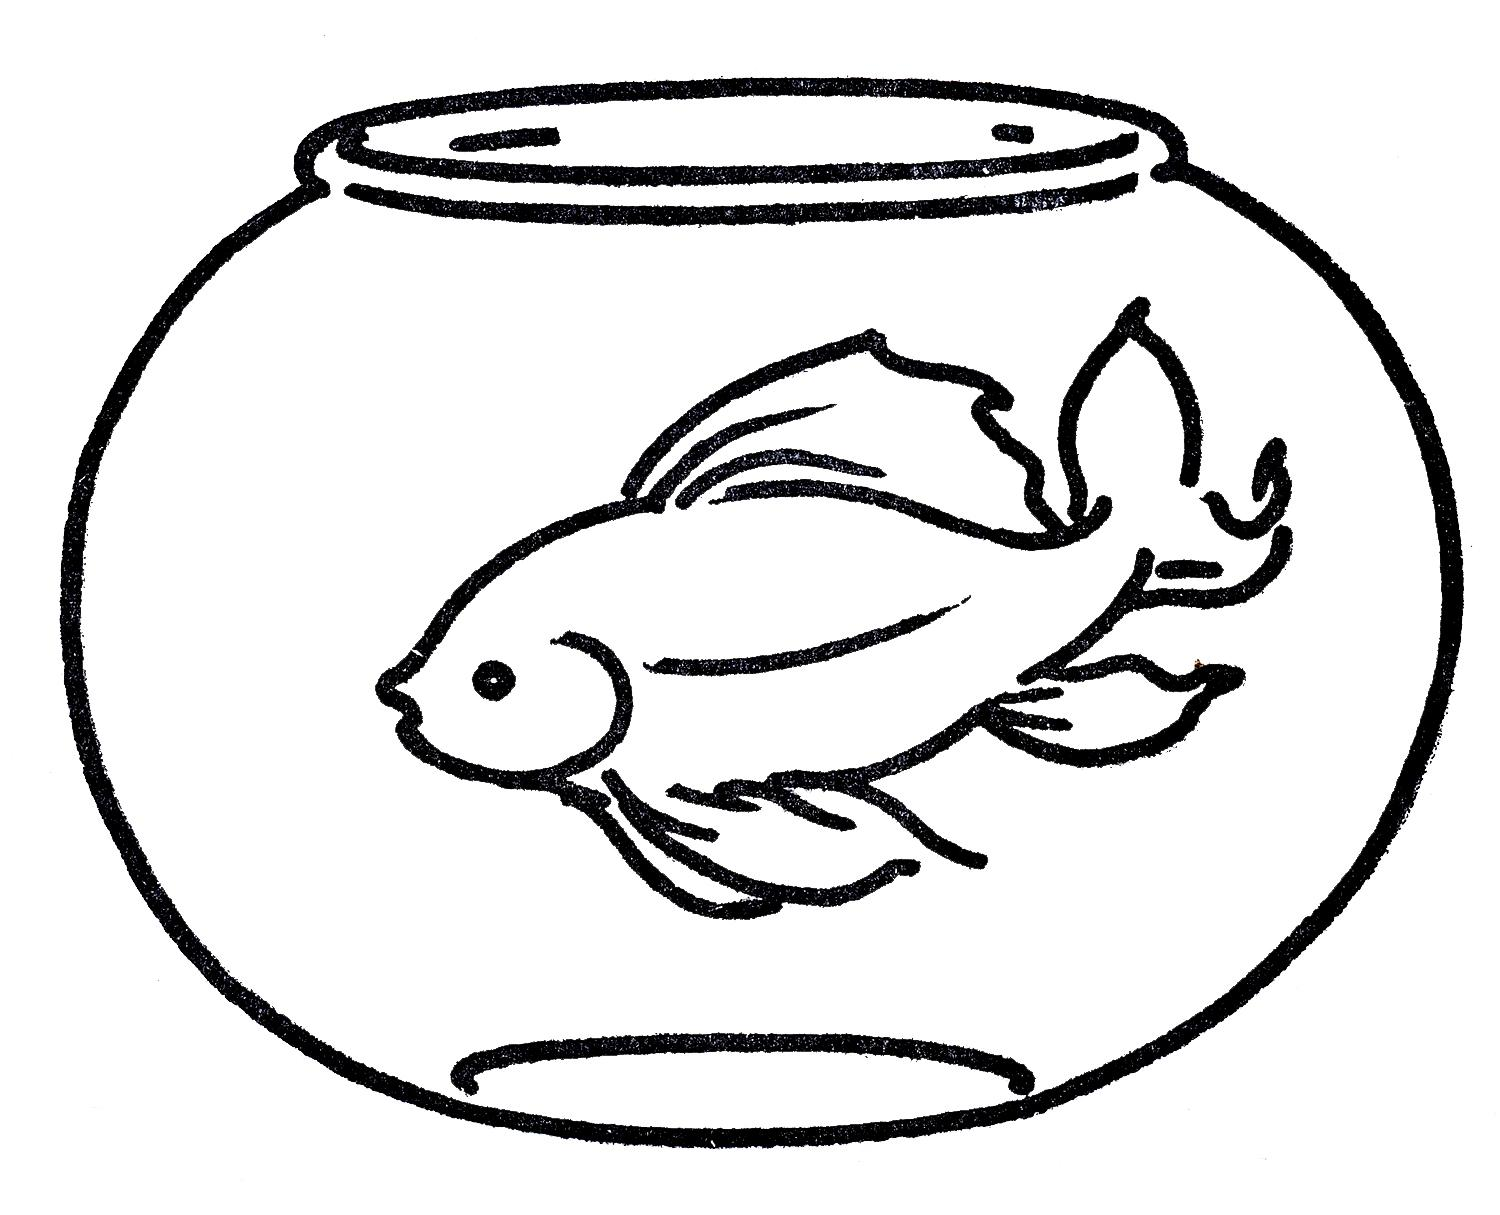 Bowl Fish Black And White Clipart.